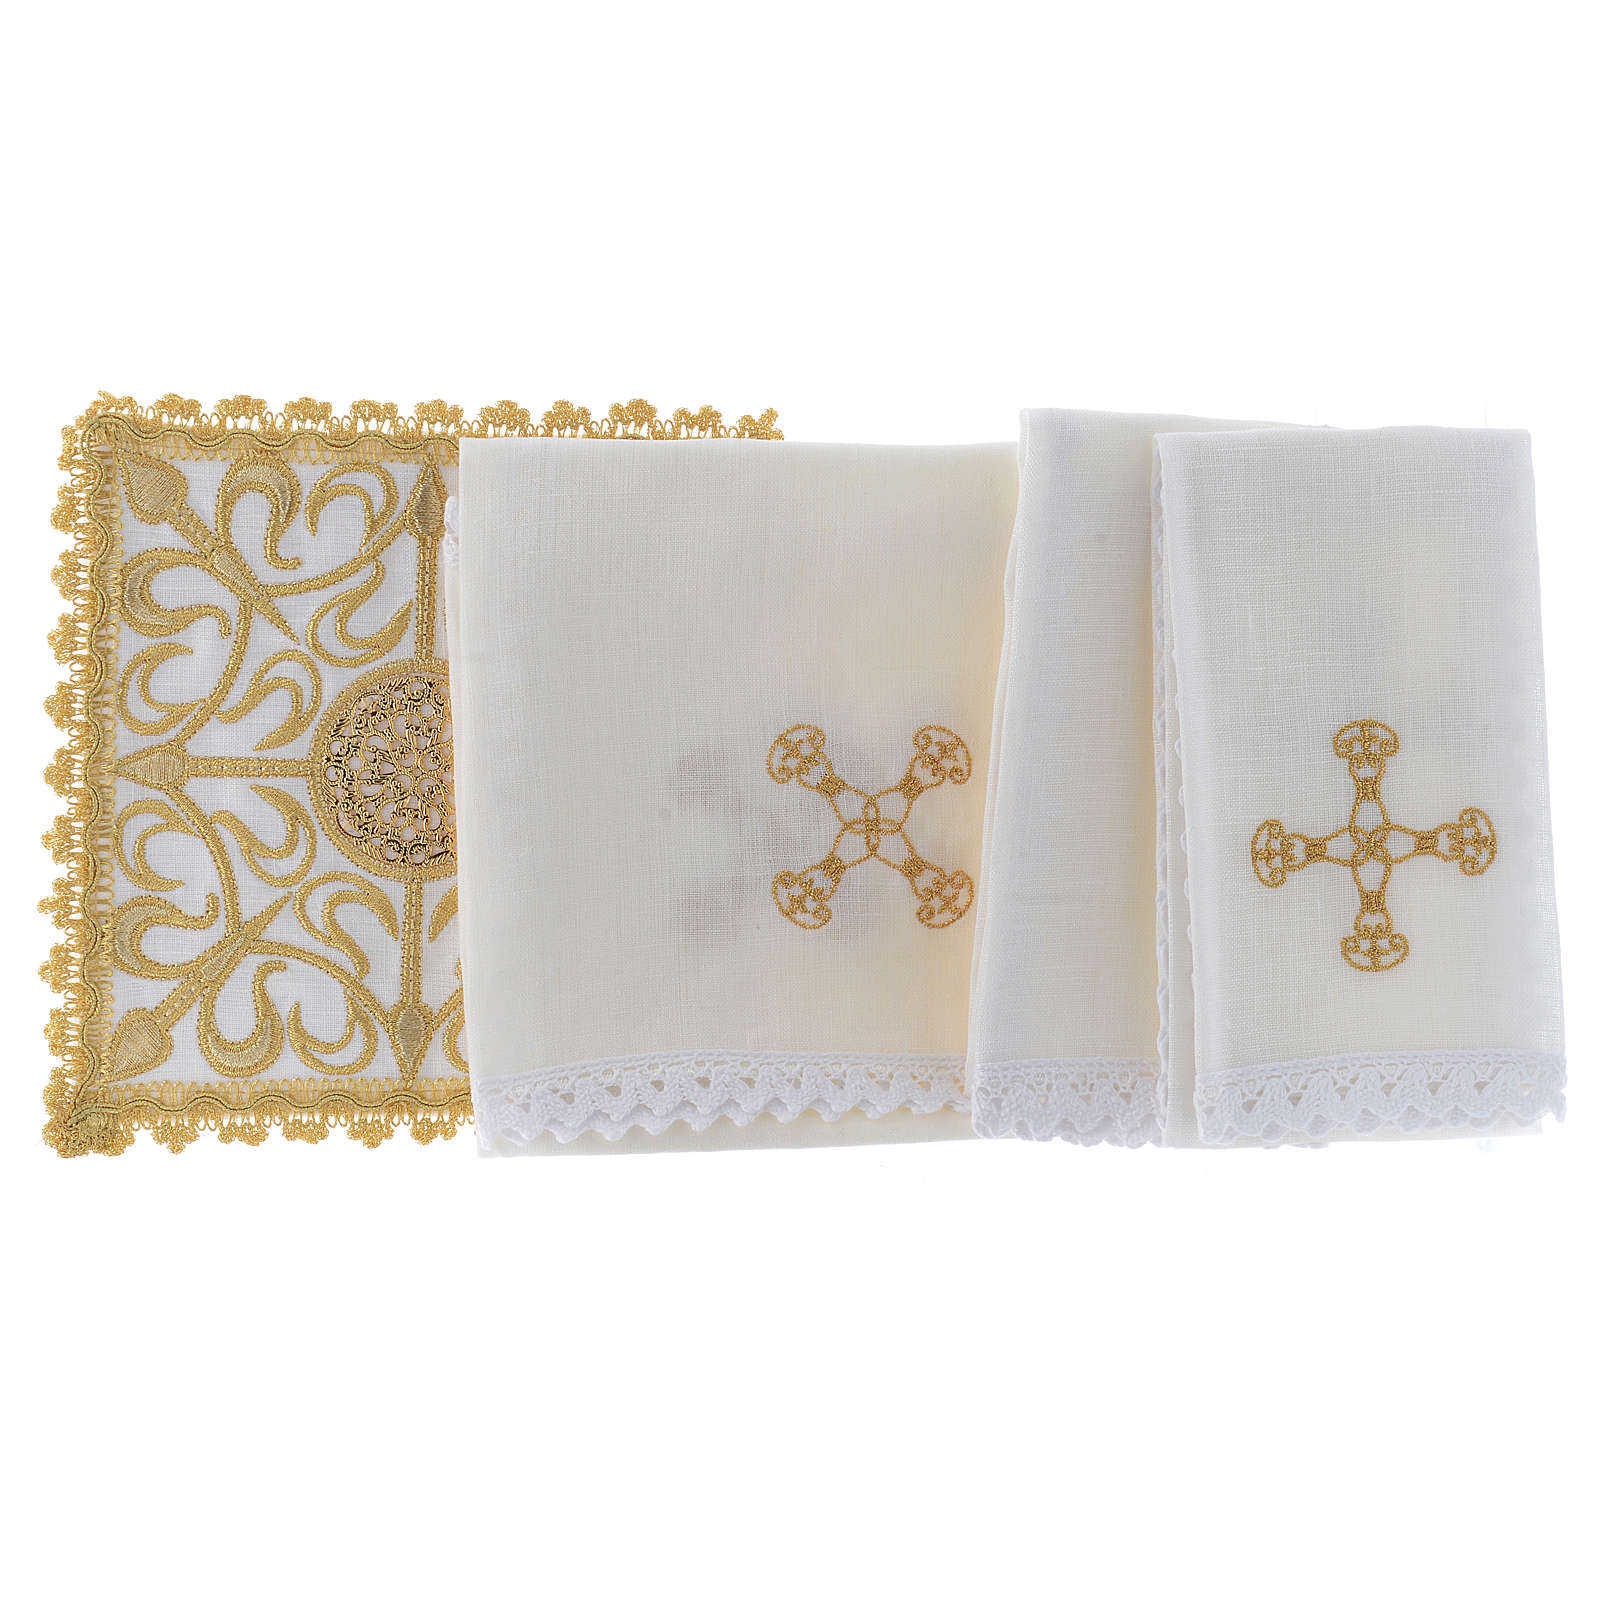 Altar linen set with cross and golden designs 100% linen 4